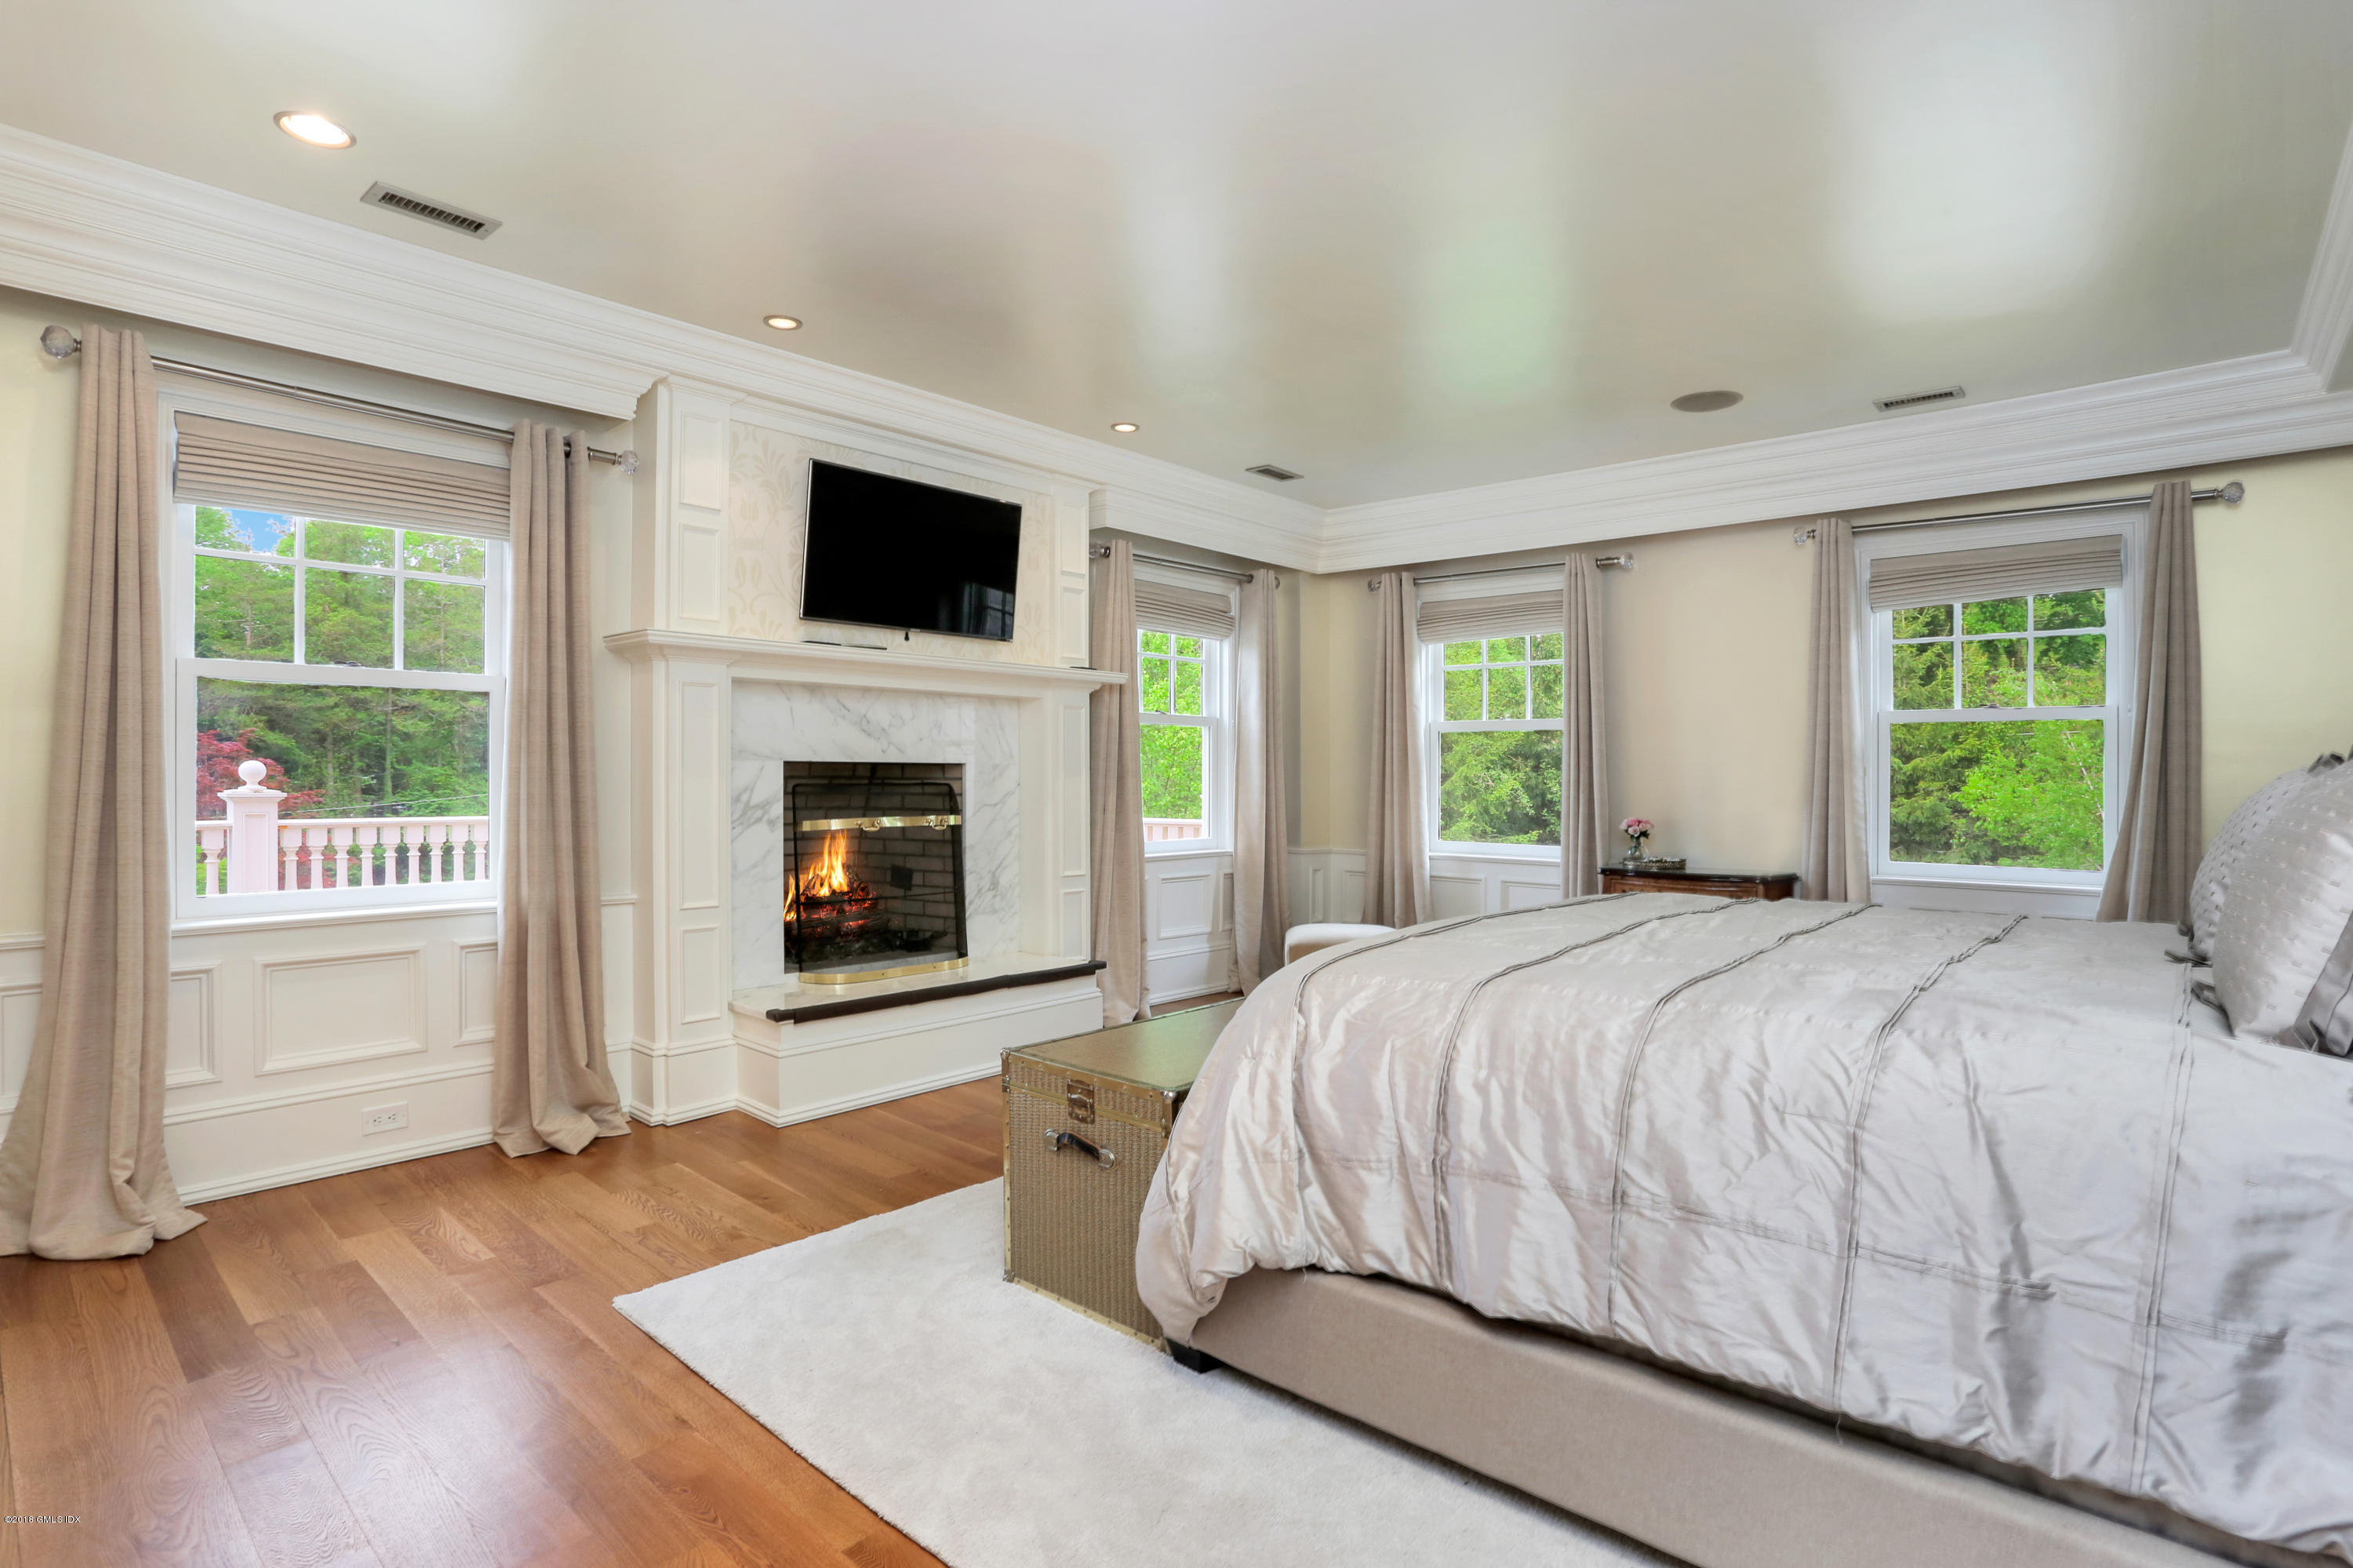 49 Doubling Road,Greenwich,Connecticut 06830,6 Bedrooms Bedrooms,7 BathroomsBathrooms,Single family,Doubling,104903